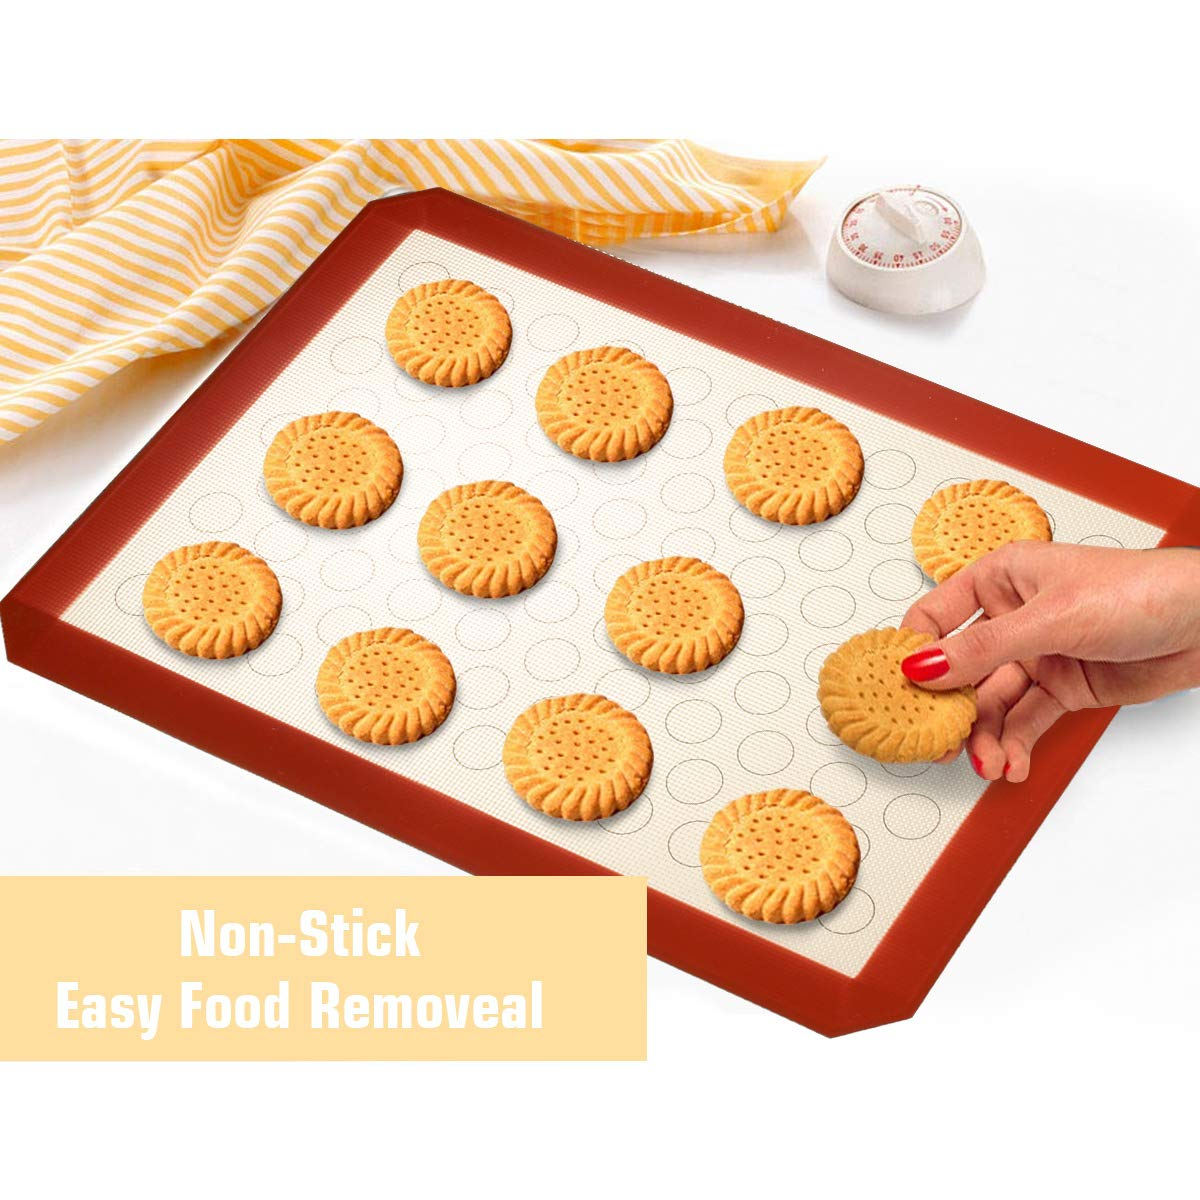 Wildone Baking Sheet with Silicone Mat Set, Set of 6 (3 Sheets + 3 Mats), Stainless Steel Cookie Sheet Baking Pan with Silicone Mat, Non Toxic & Heavy Duty & Easy Clean by Wildone (Image #5)